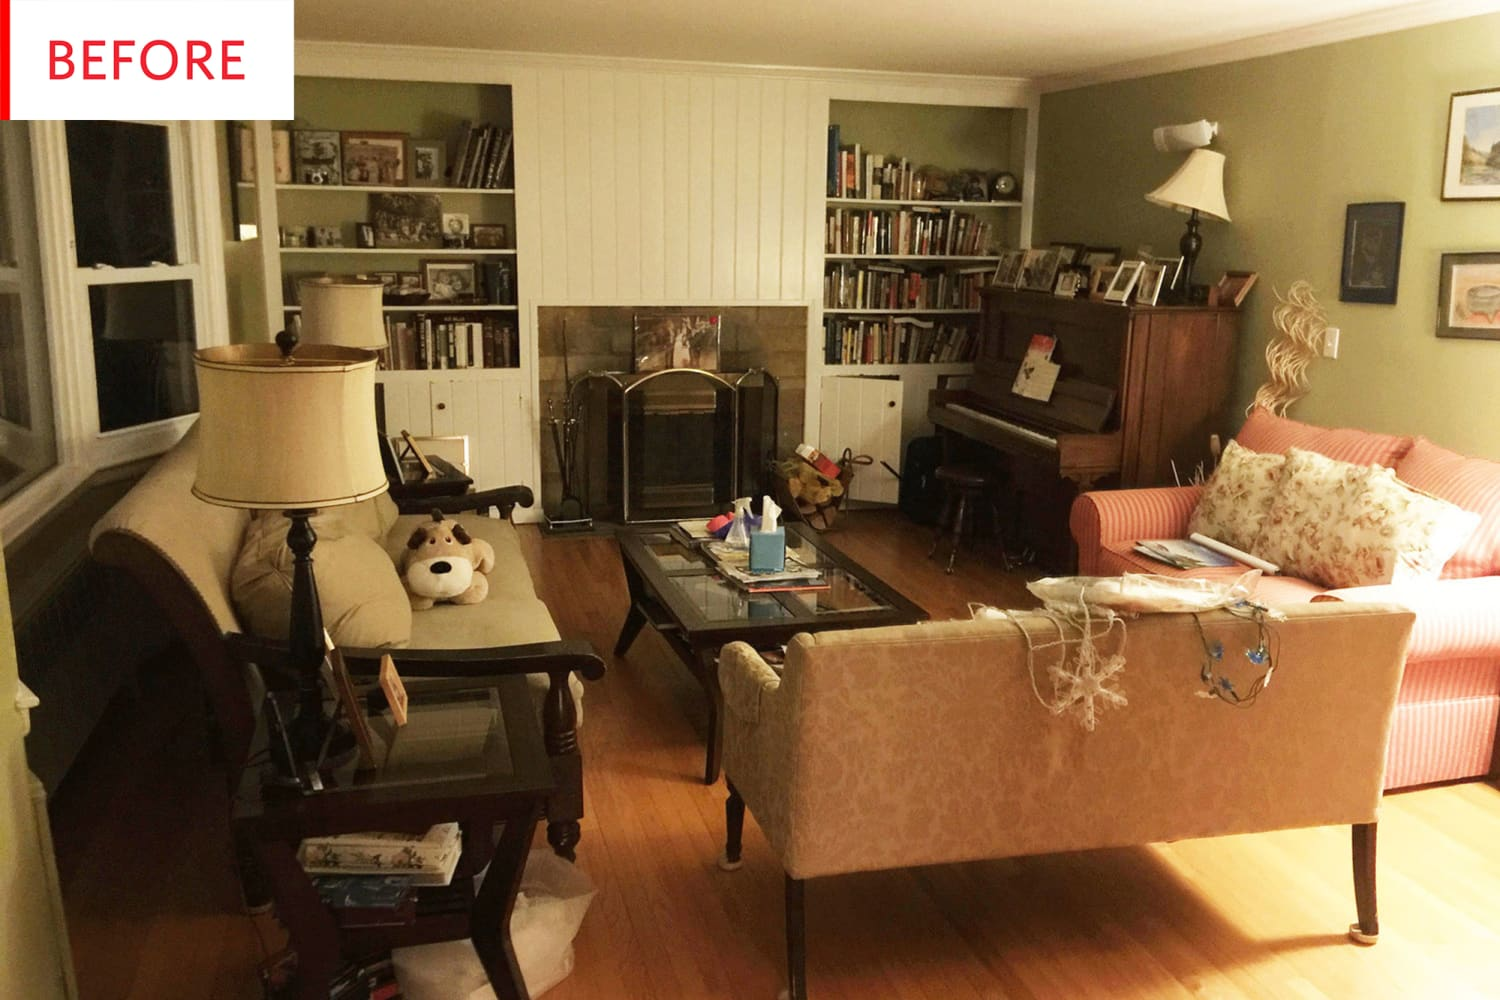 Before and After: A Once-Cluttered House Is Now Light, Bright, and a lot More Enjoyable